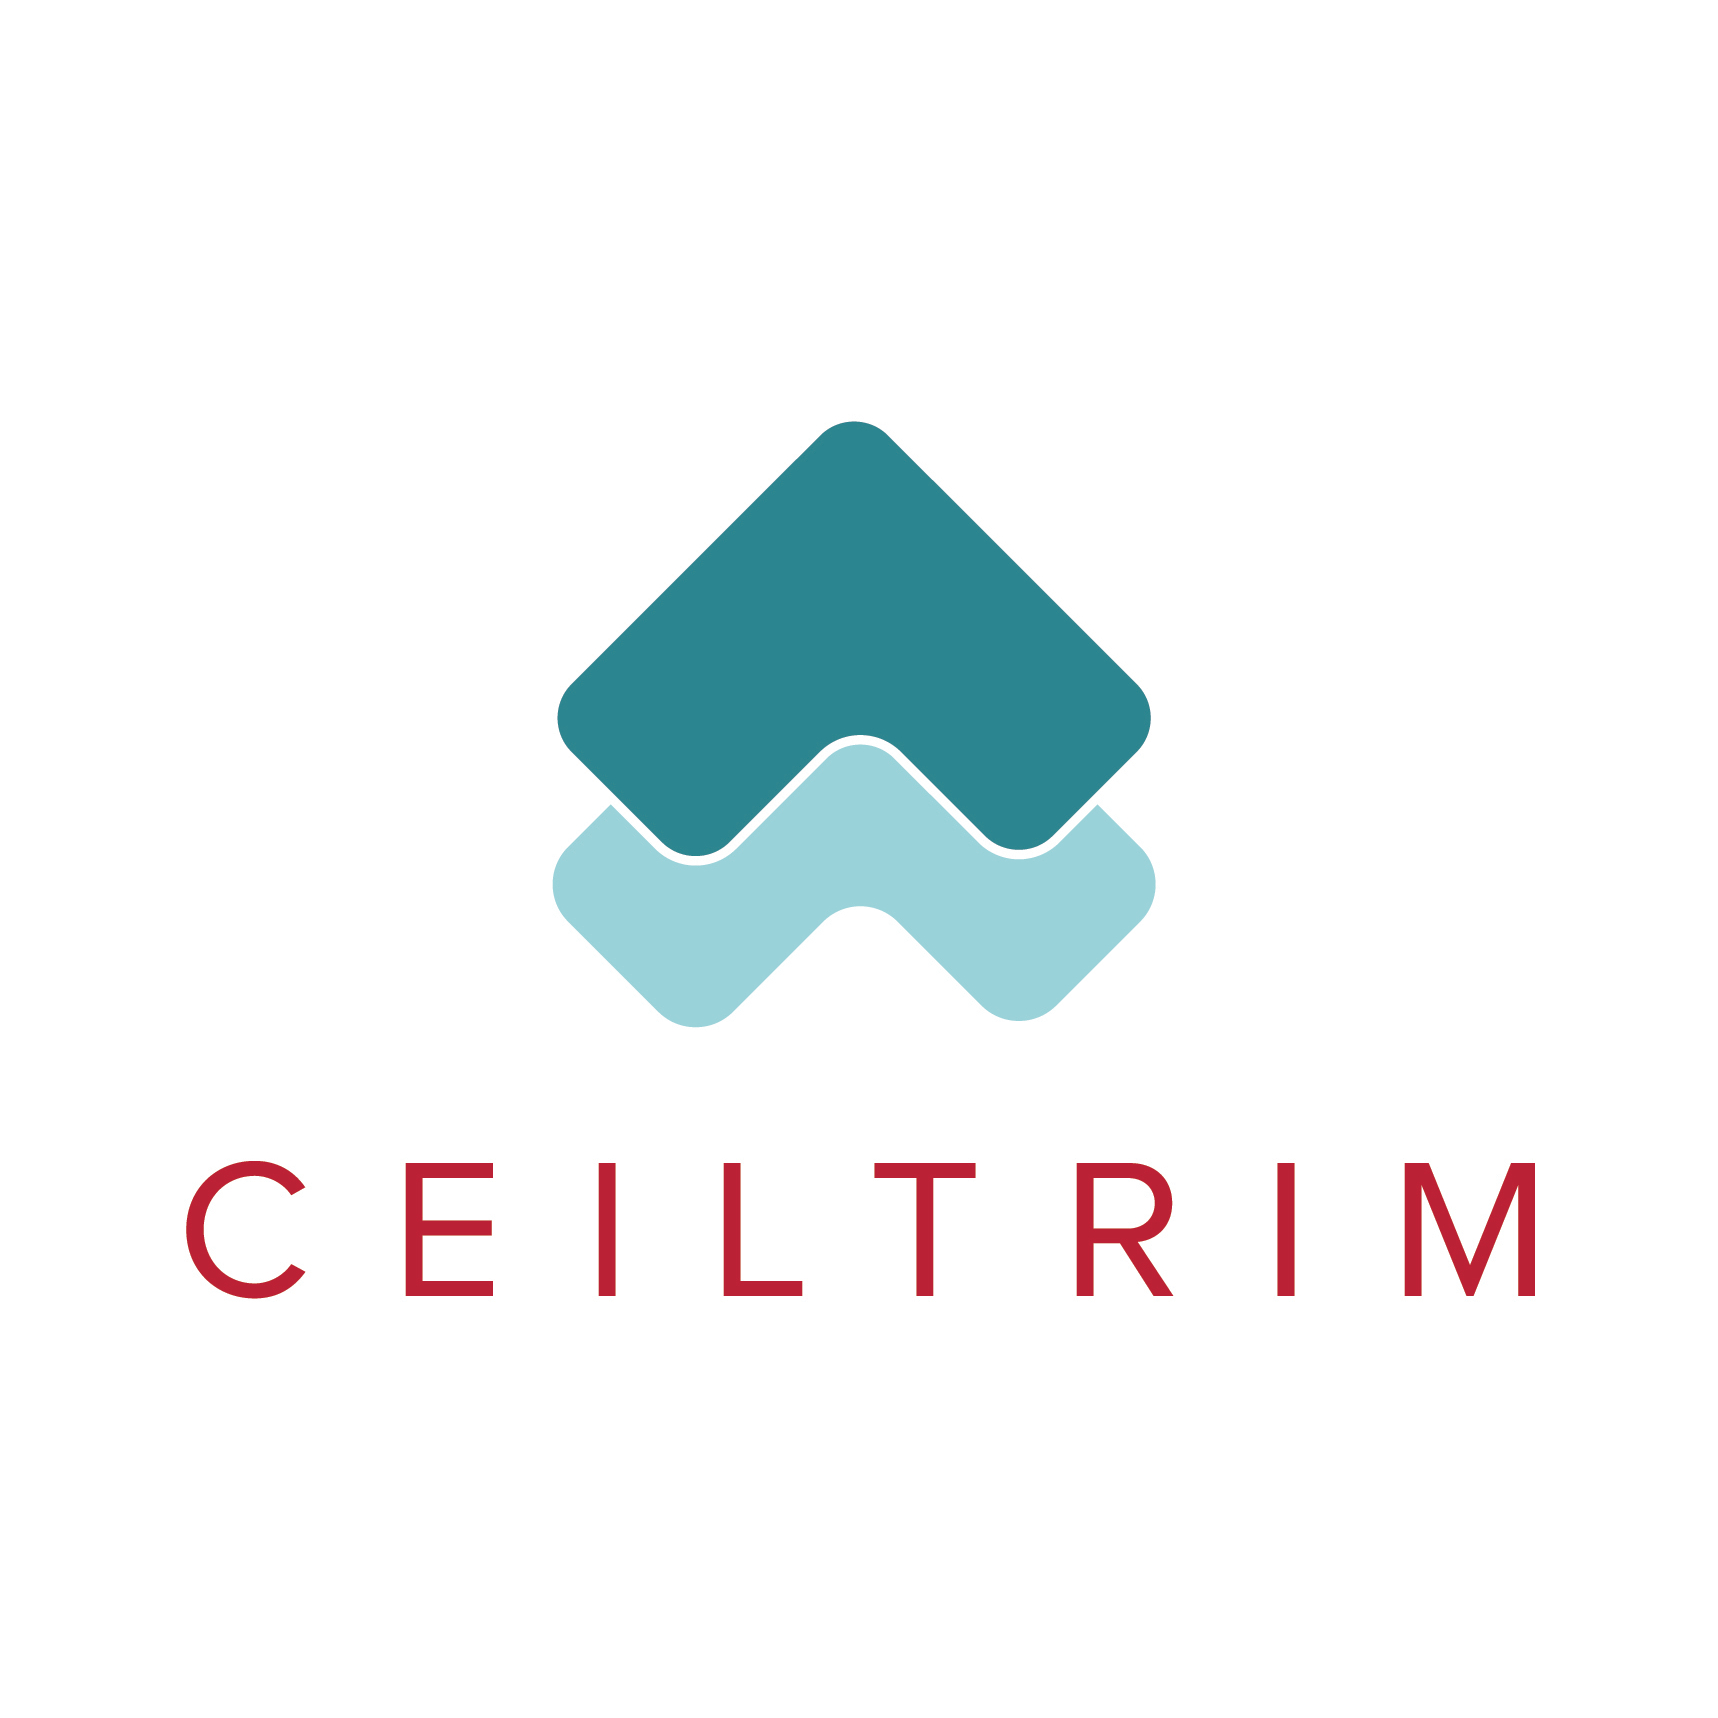 CEILTRIM Inc. logo